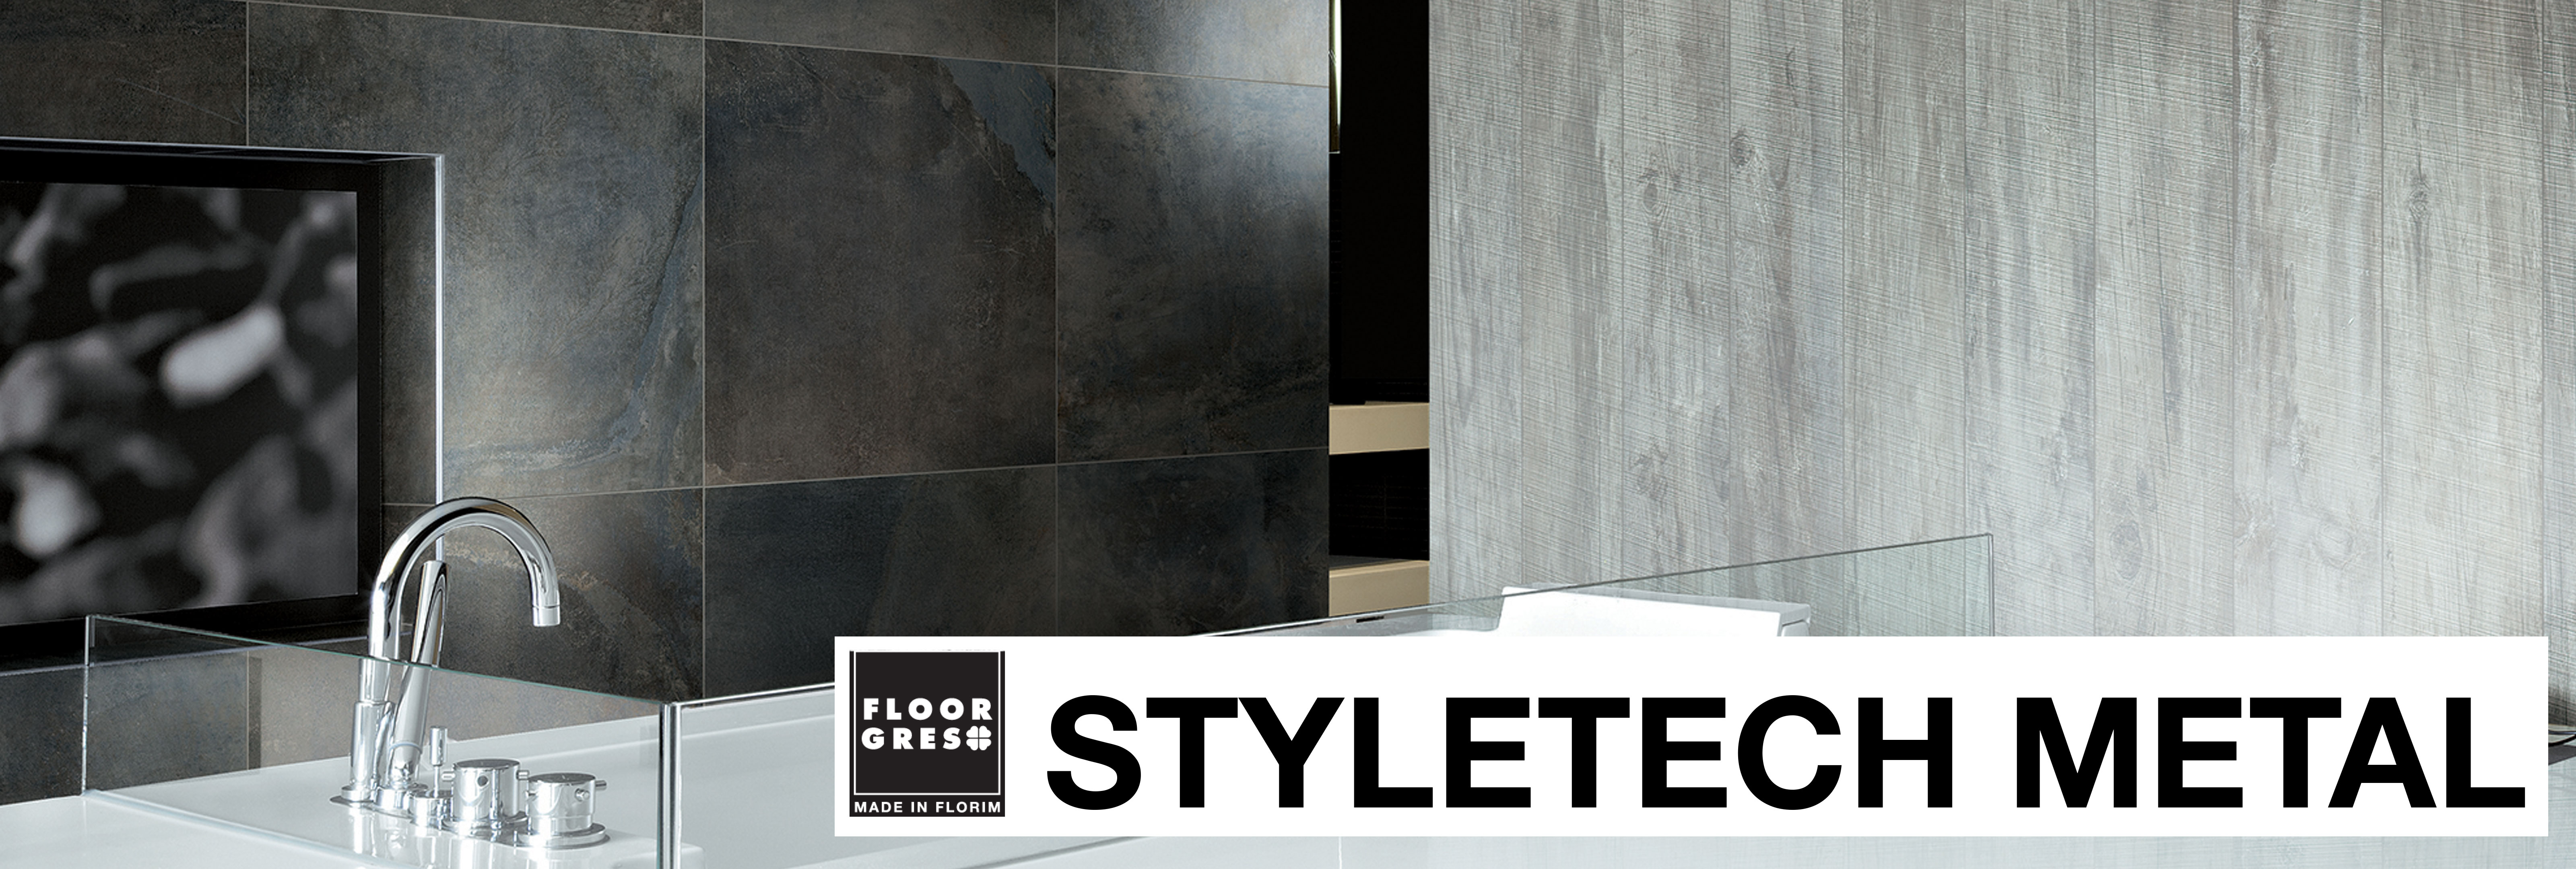 Floorgres styletech metal italian porcelain tile floor gres styletech metal italian porcelain tile dailygadgetfo Image collections